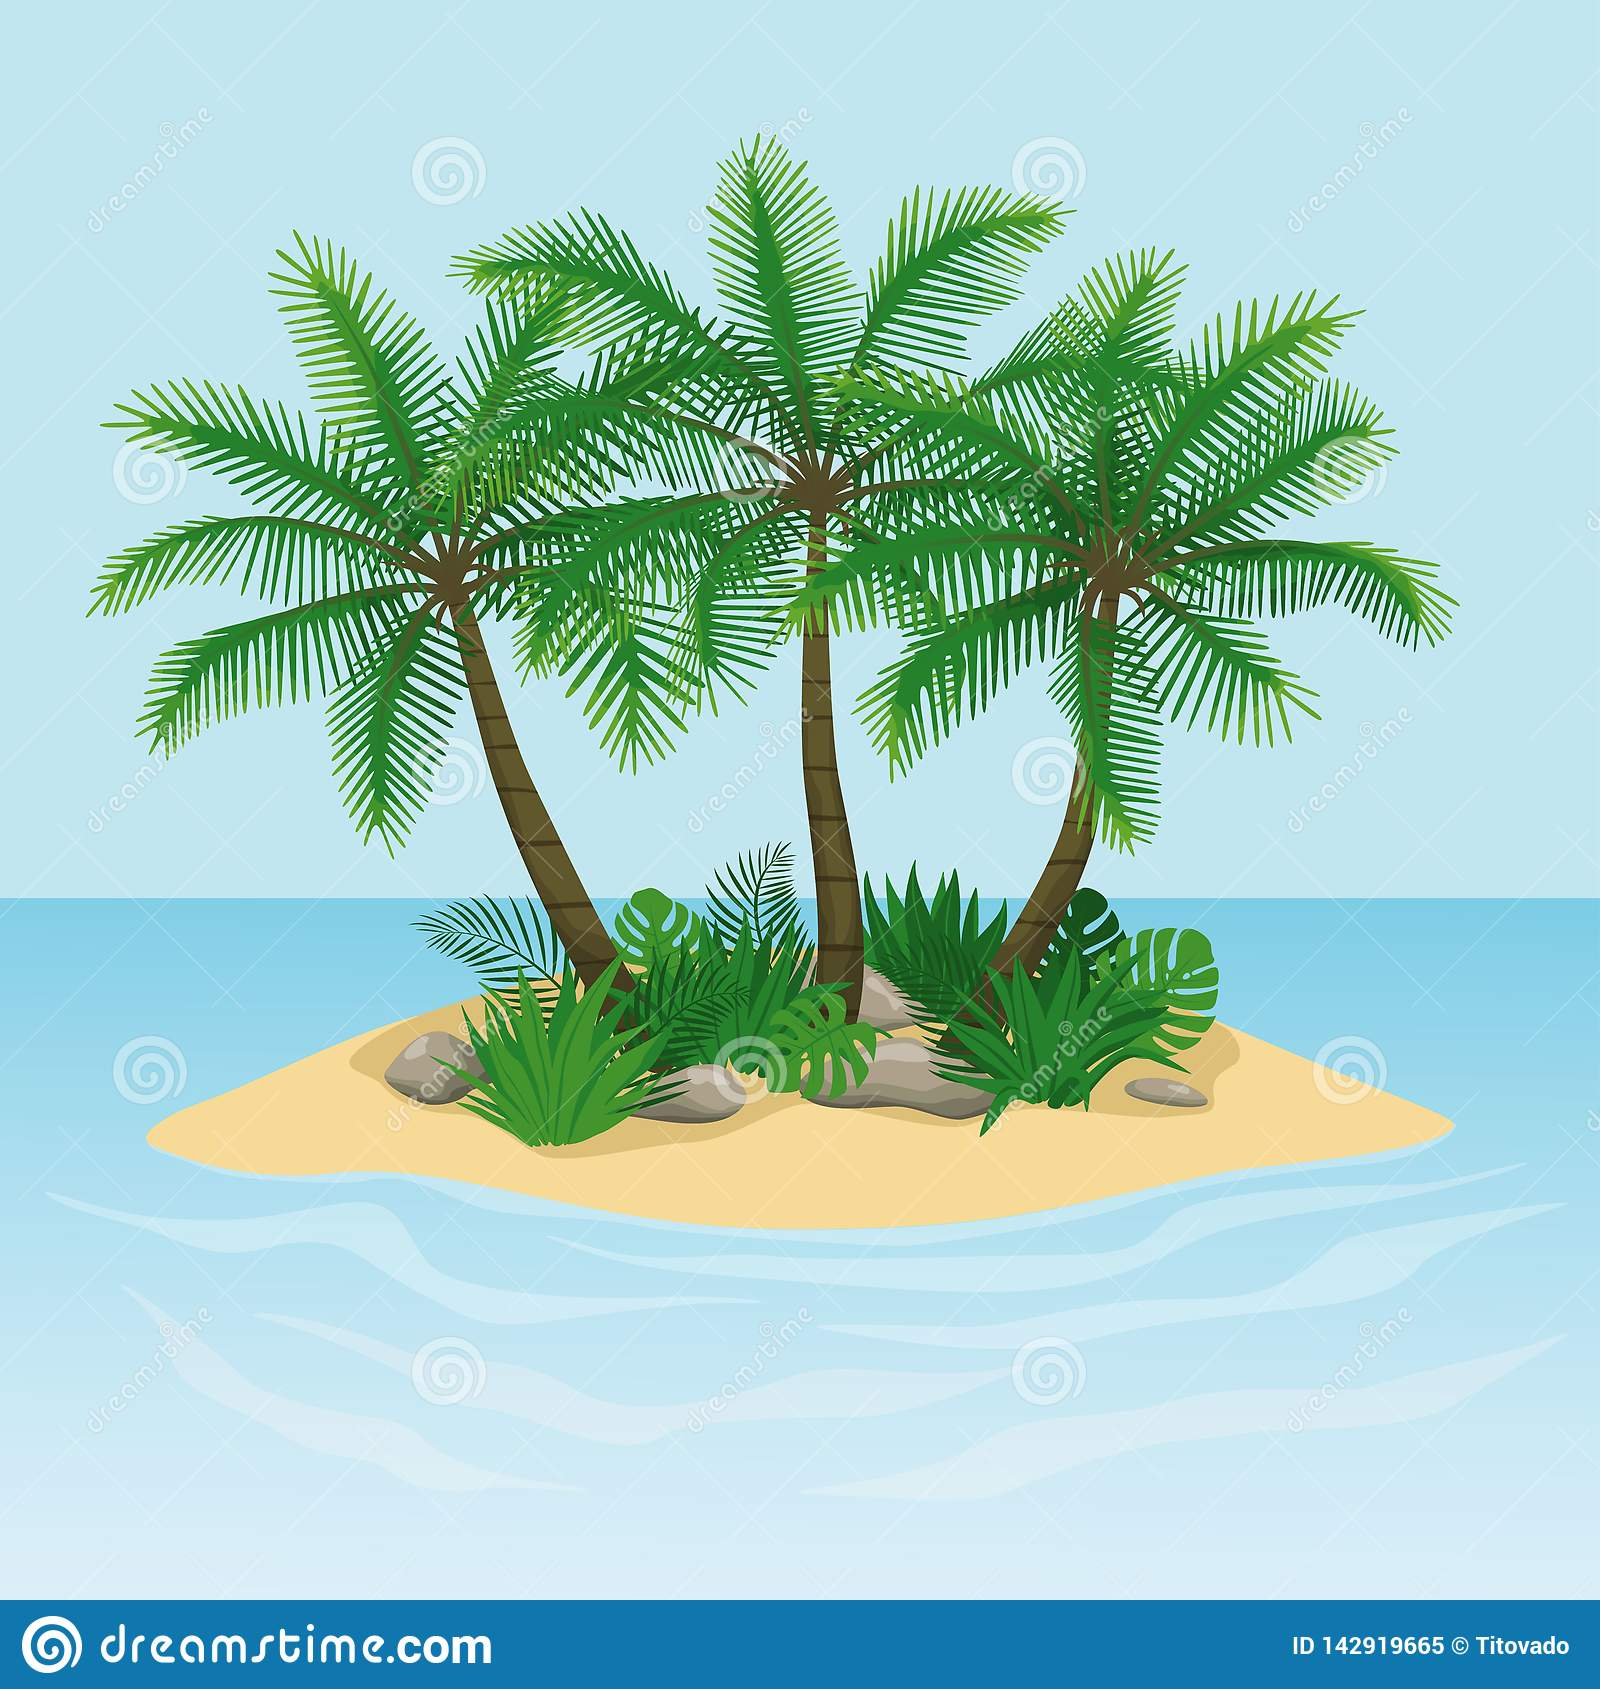 Island with palm trees, rocks and stones